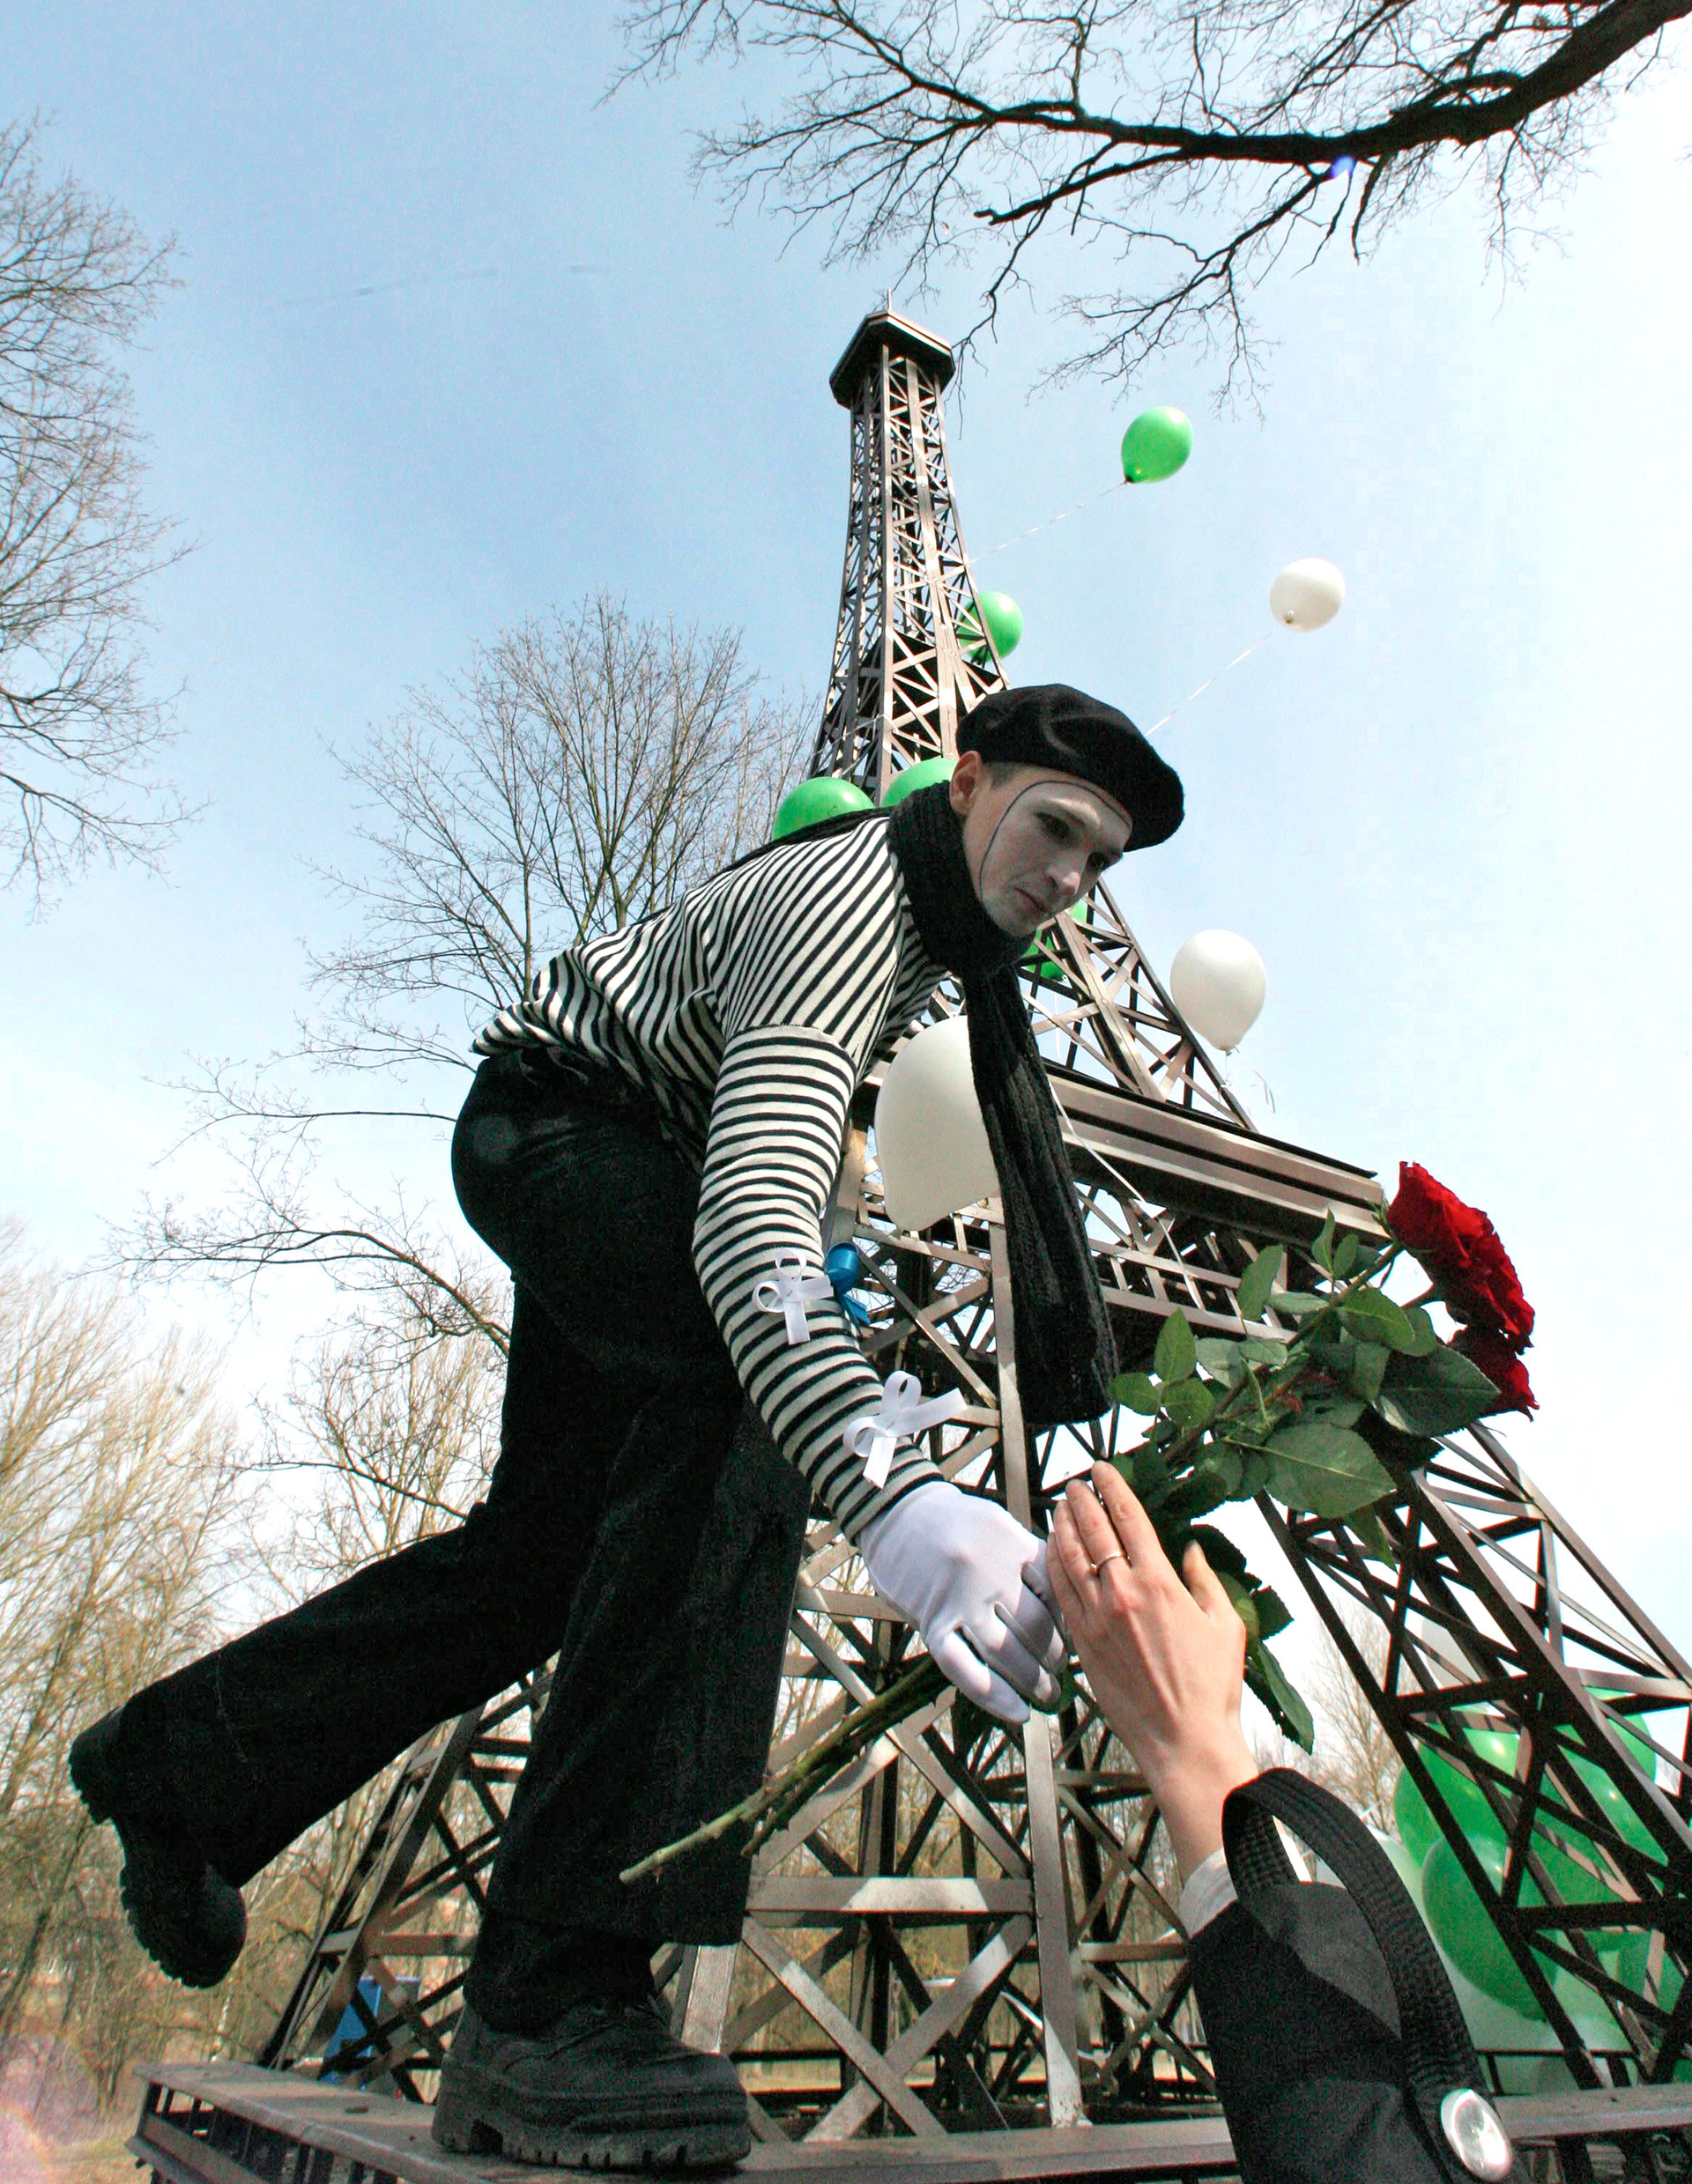 Outdoor festivities to mark the 120th anniversary of the Eiffel Tower near its 8-meter-tall copy in the town park of Gusev, Kaliningrad Region.